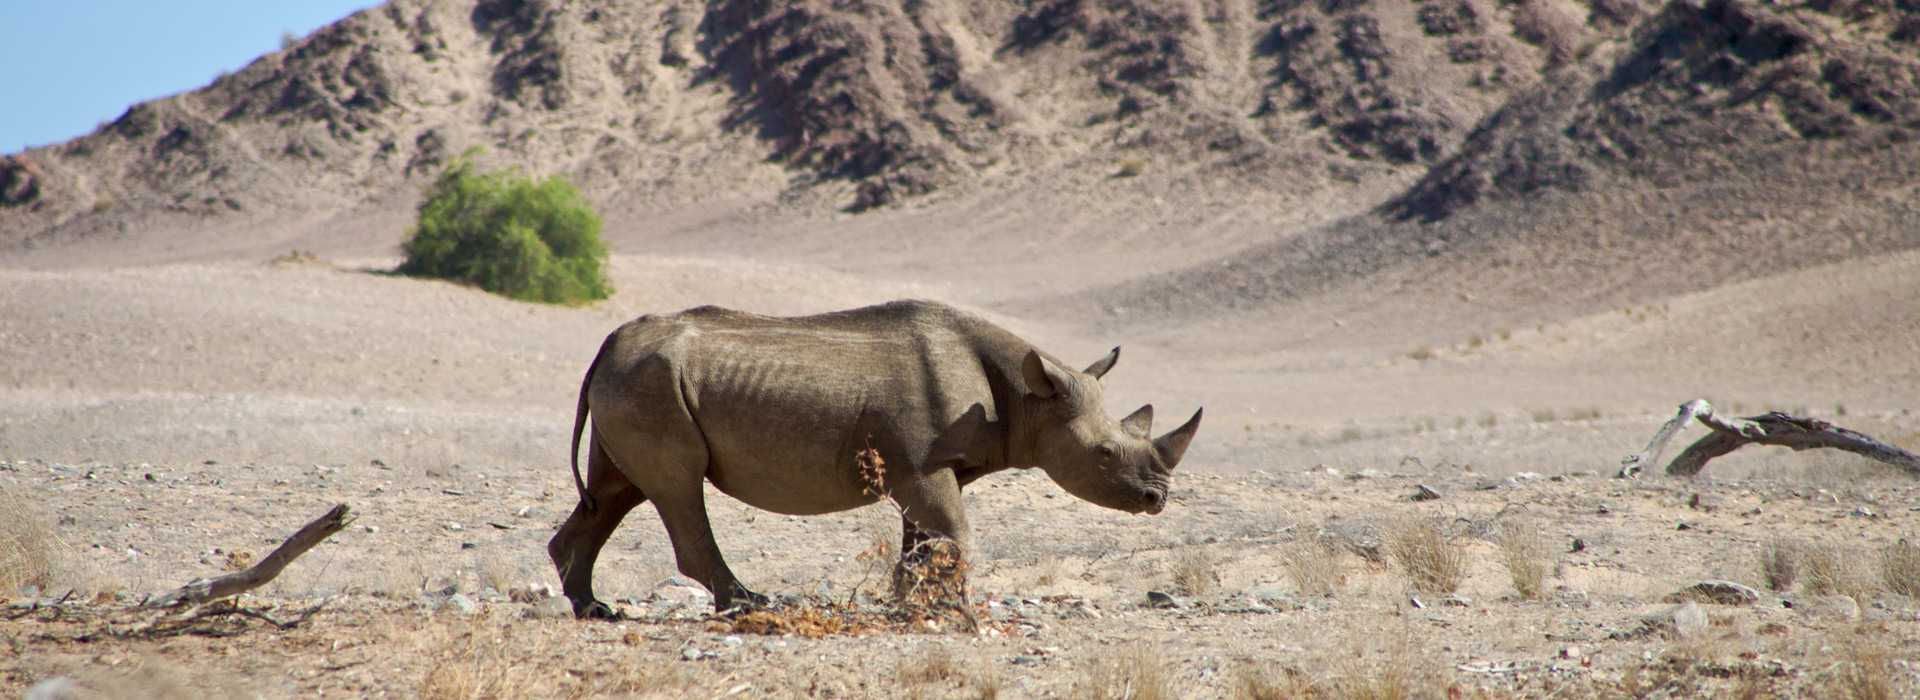 Lone Rhino Walking Across Etosha National Park